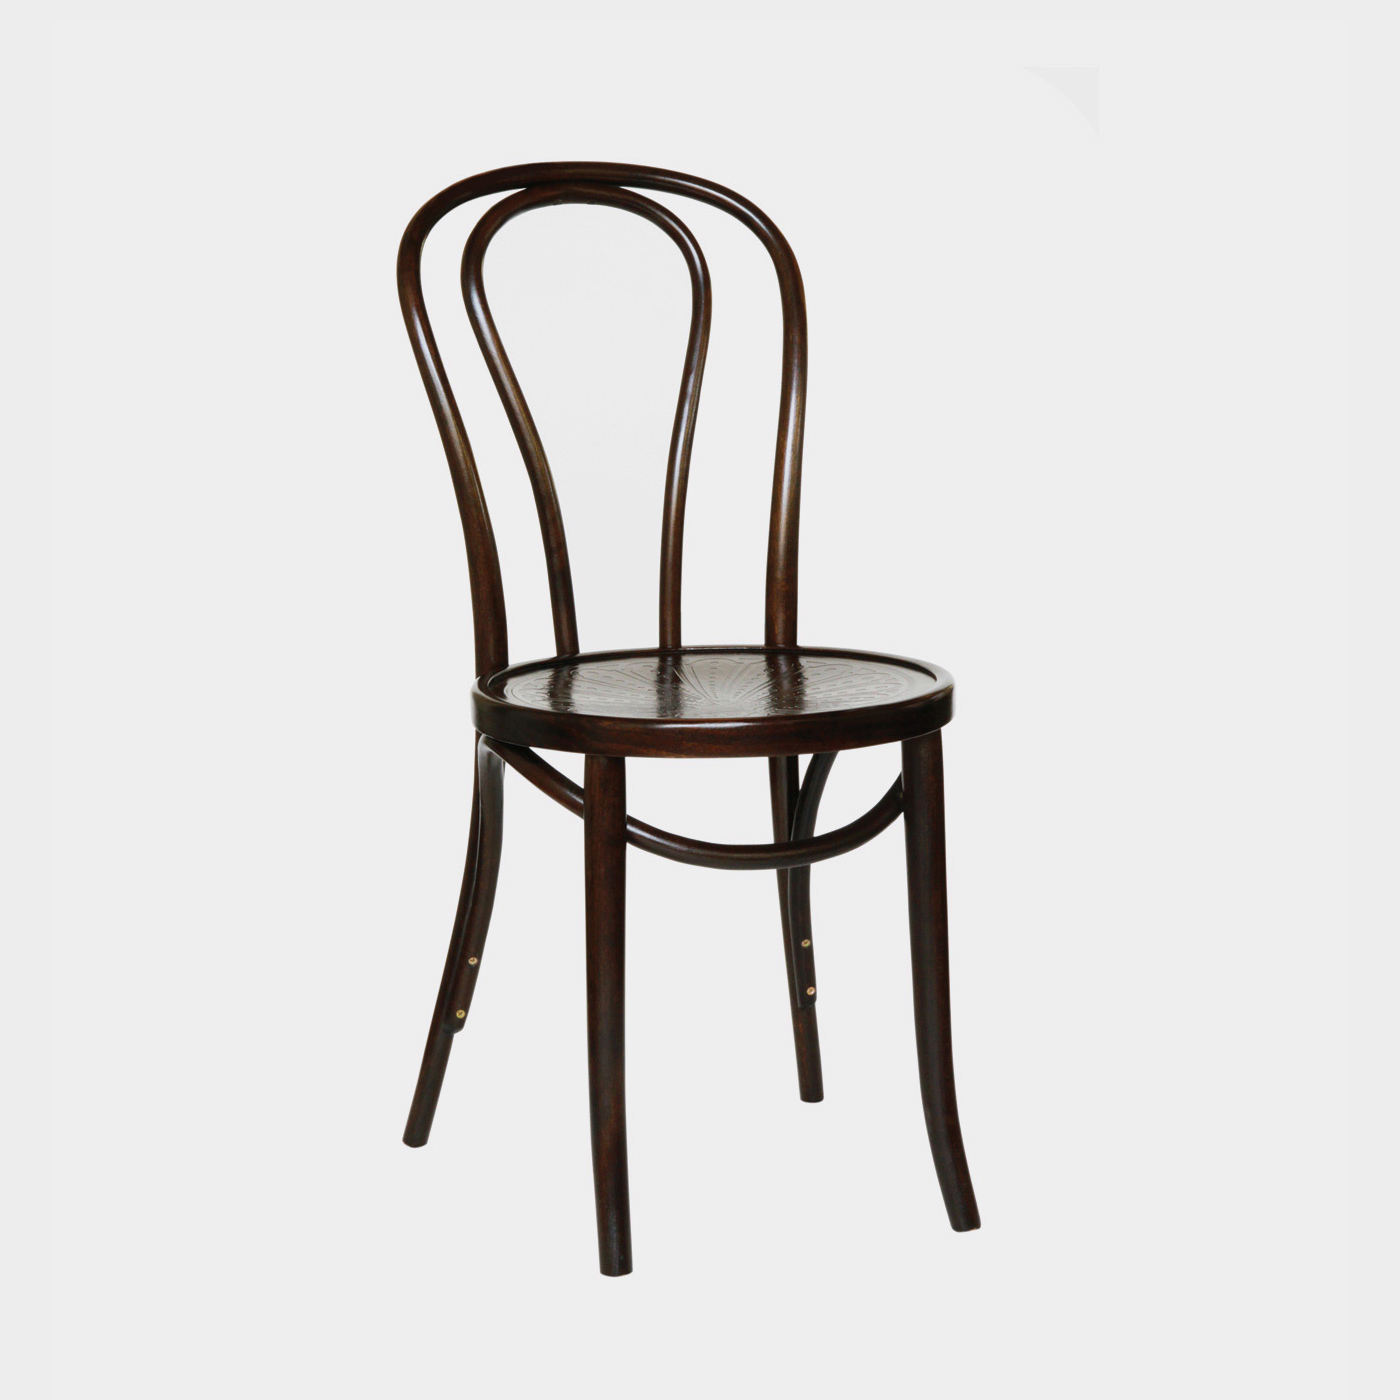 Thonet Michael No 18 Thonet Thonet